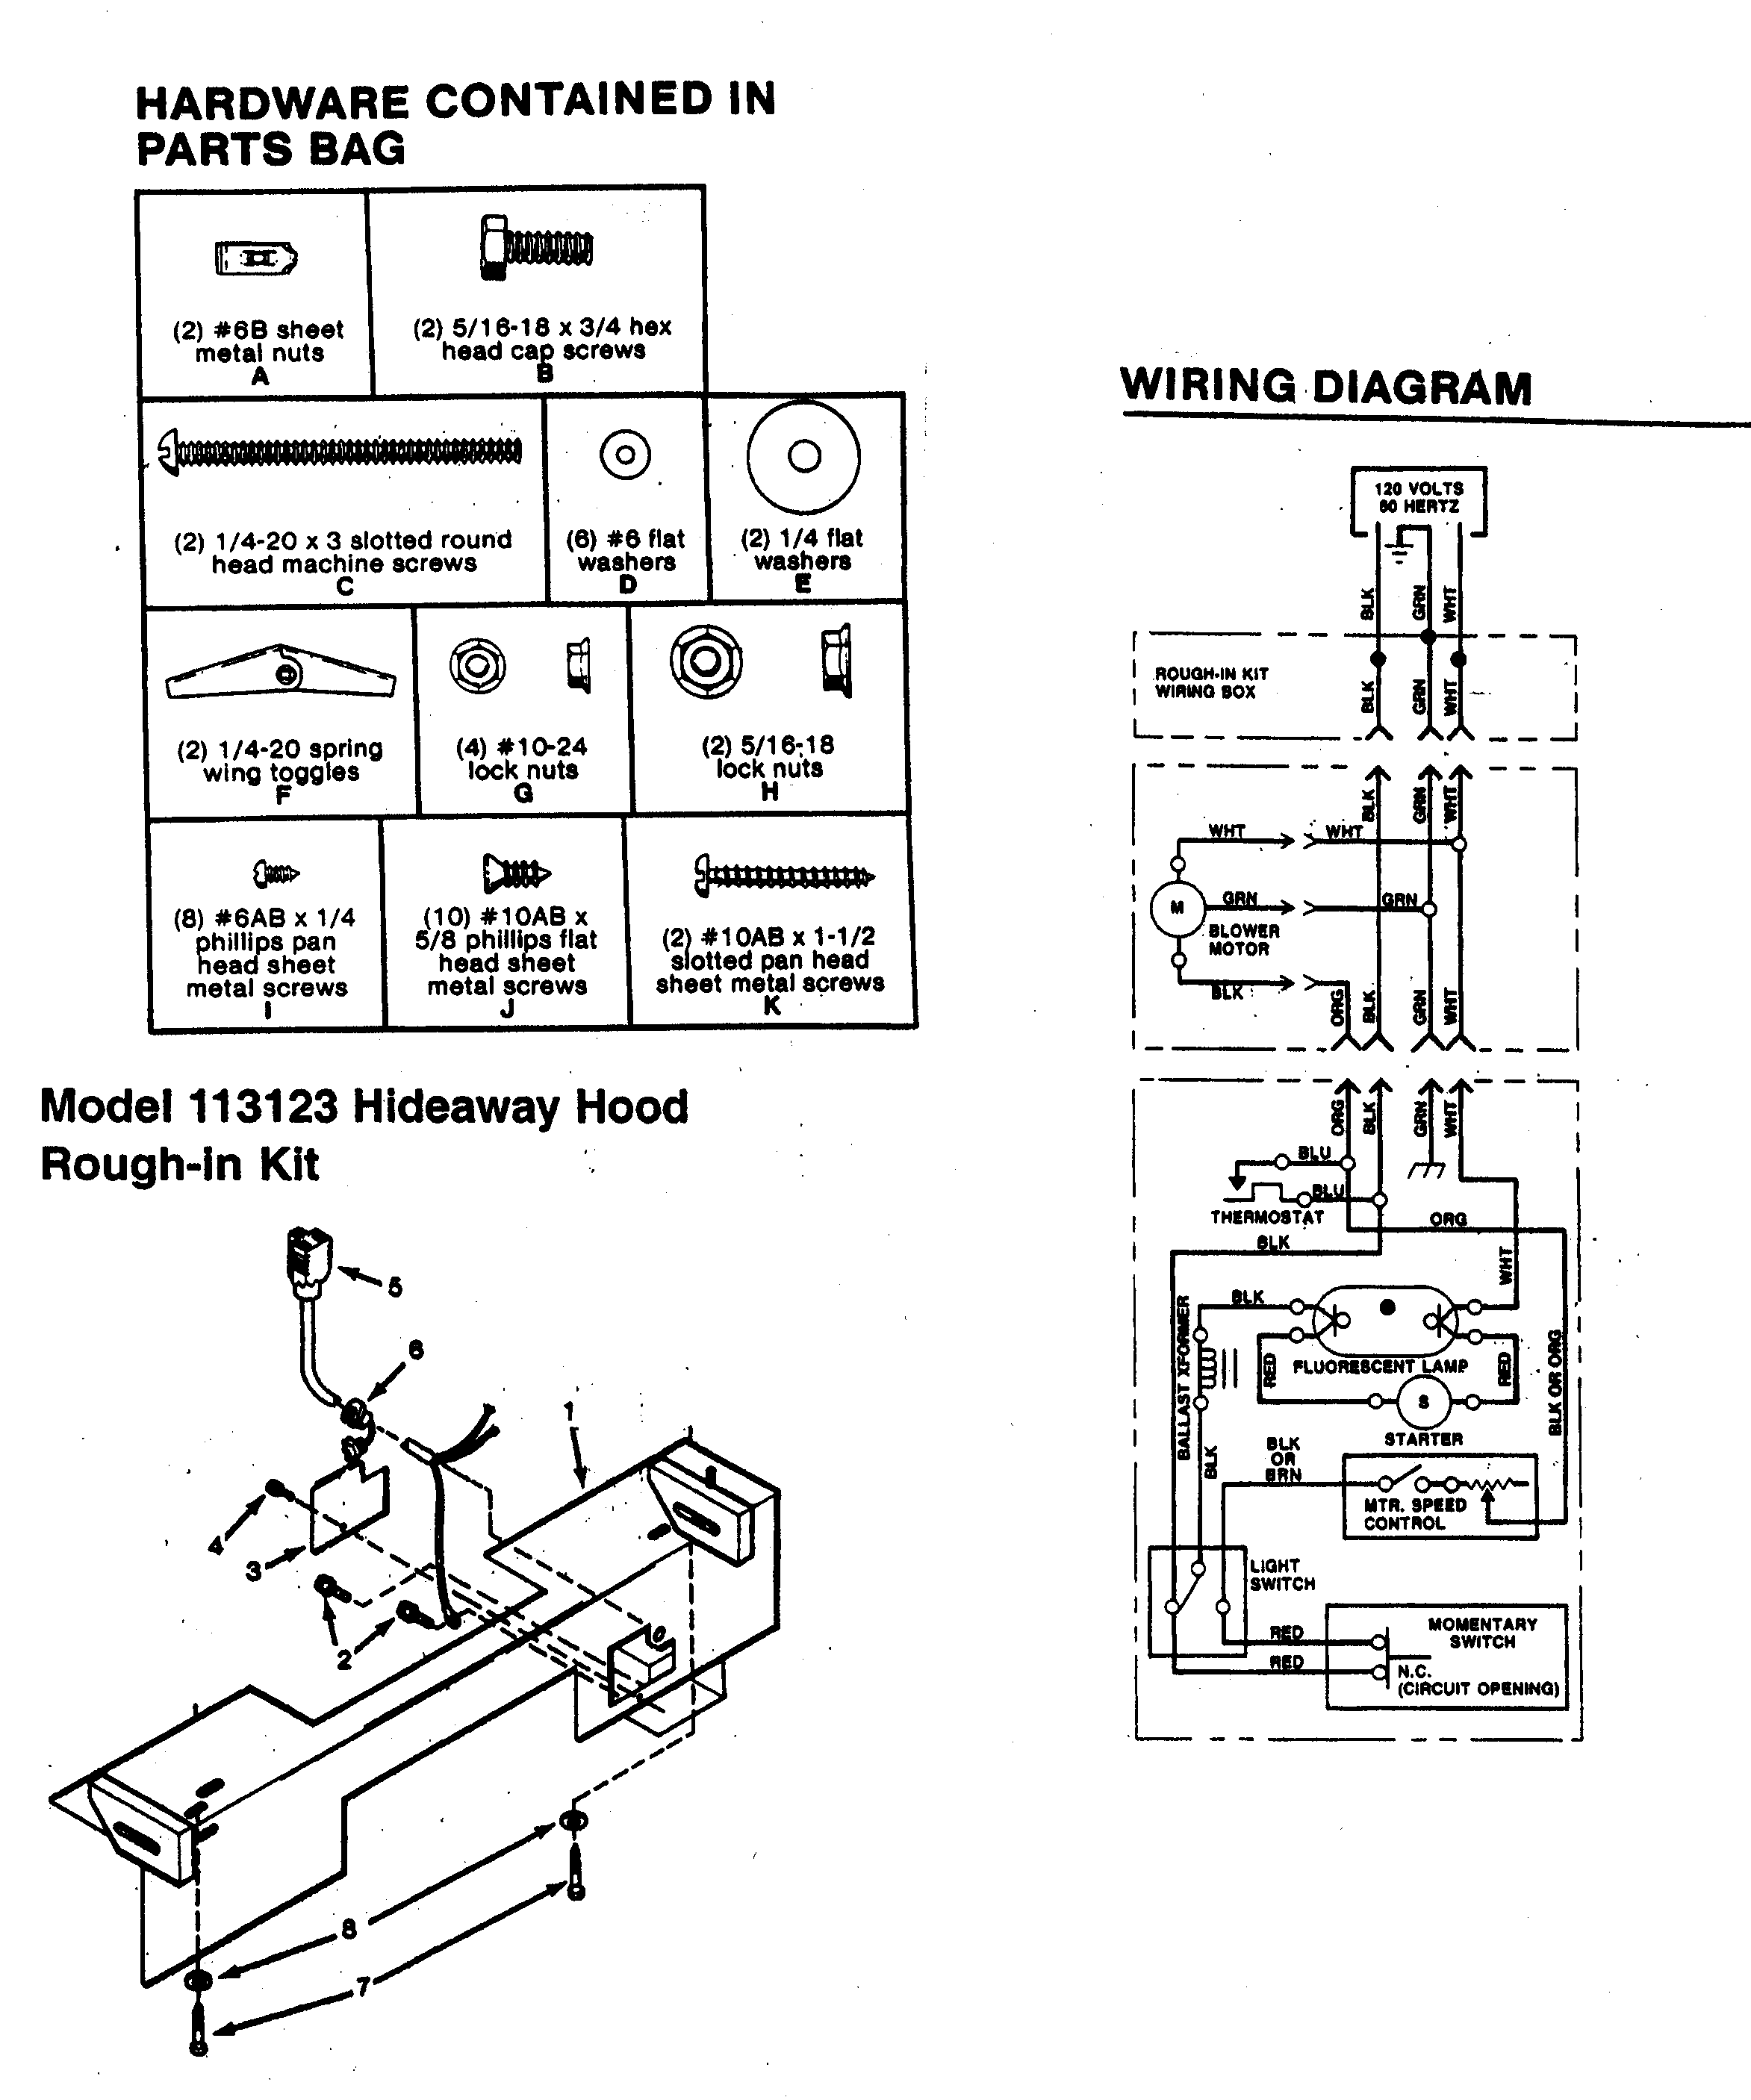 unique wiring diagram for electric stove outlet diagram diagramsample diagramtemplate wiringdiagram  [ 2345 x 2813 Pixel ]